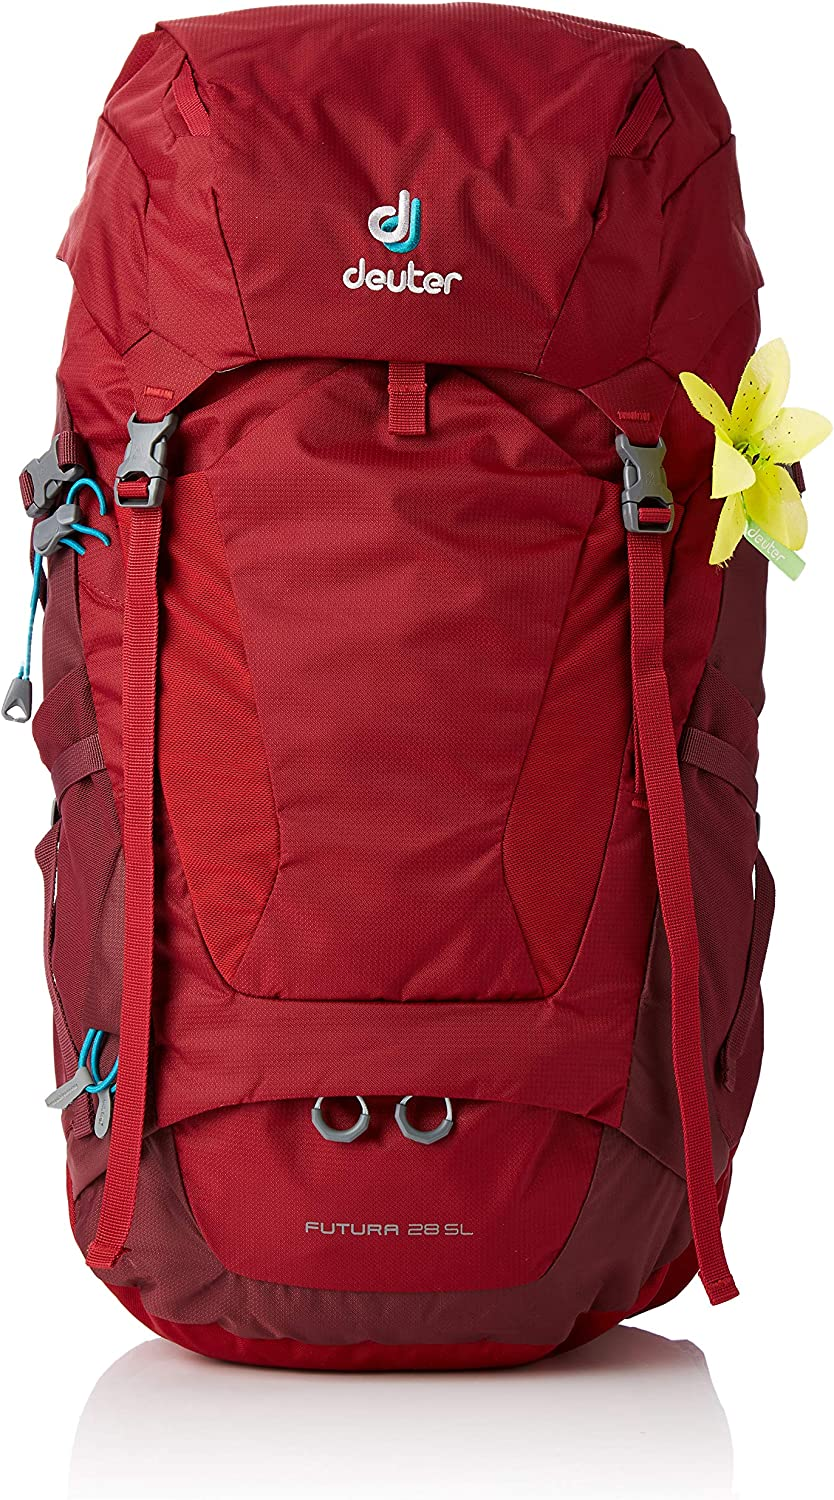 Deuter Futura 28 SL Hiking Backpack